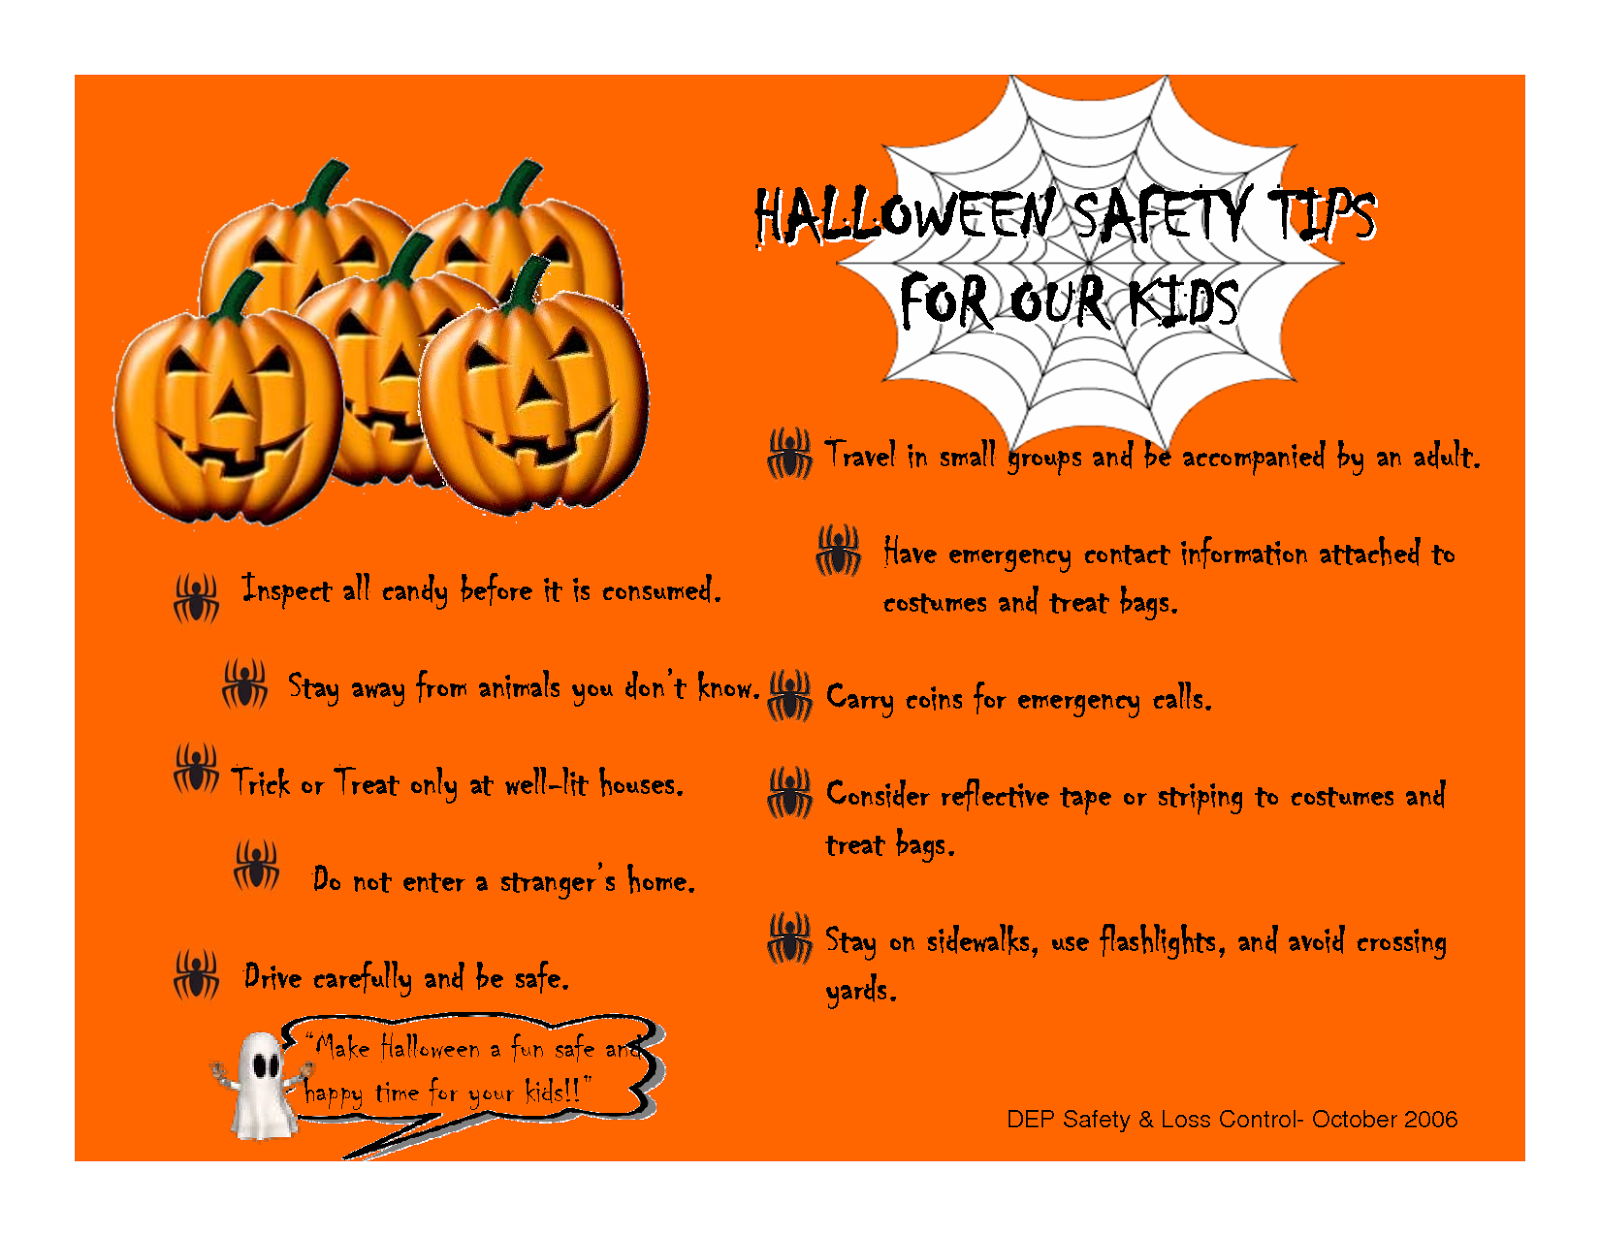 Halloween Safety Tips for our Kids. Let's all have a safe